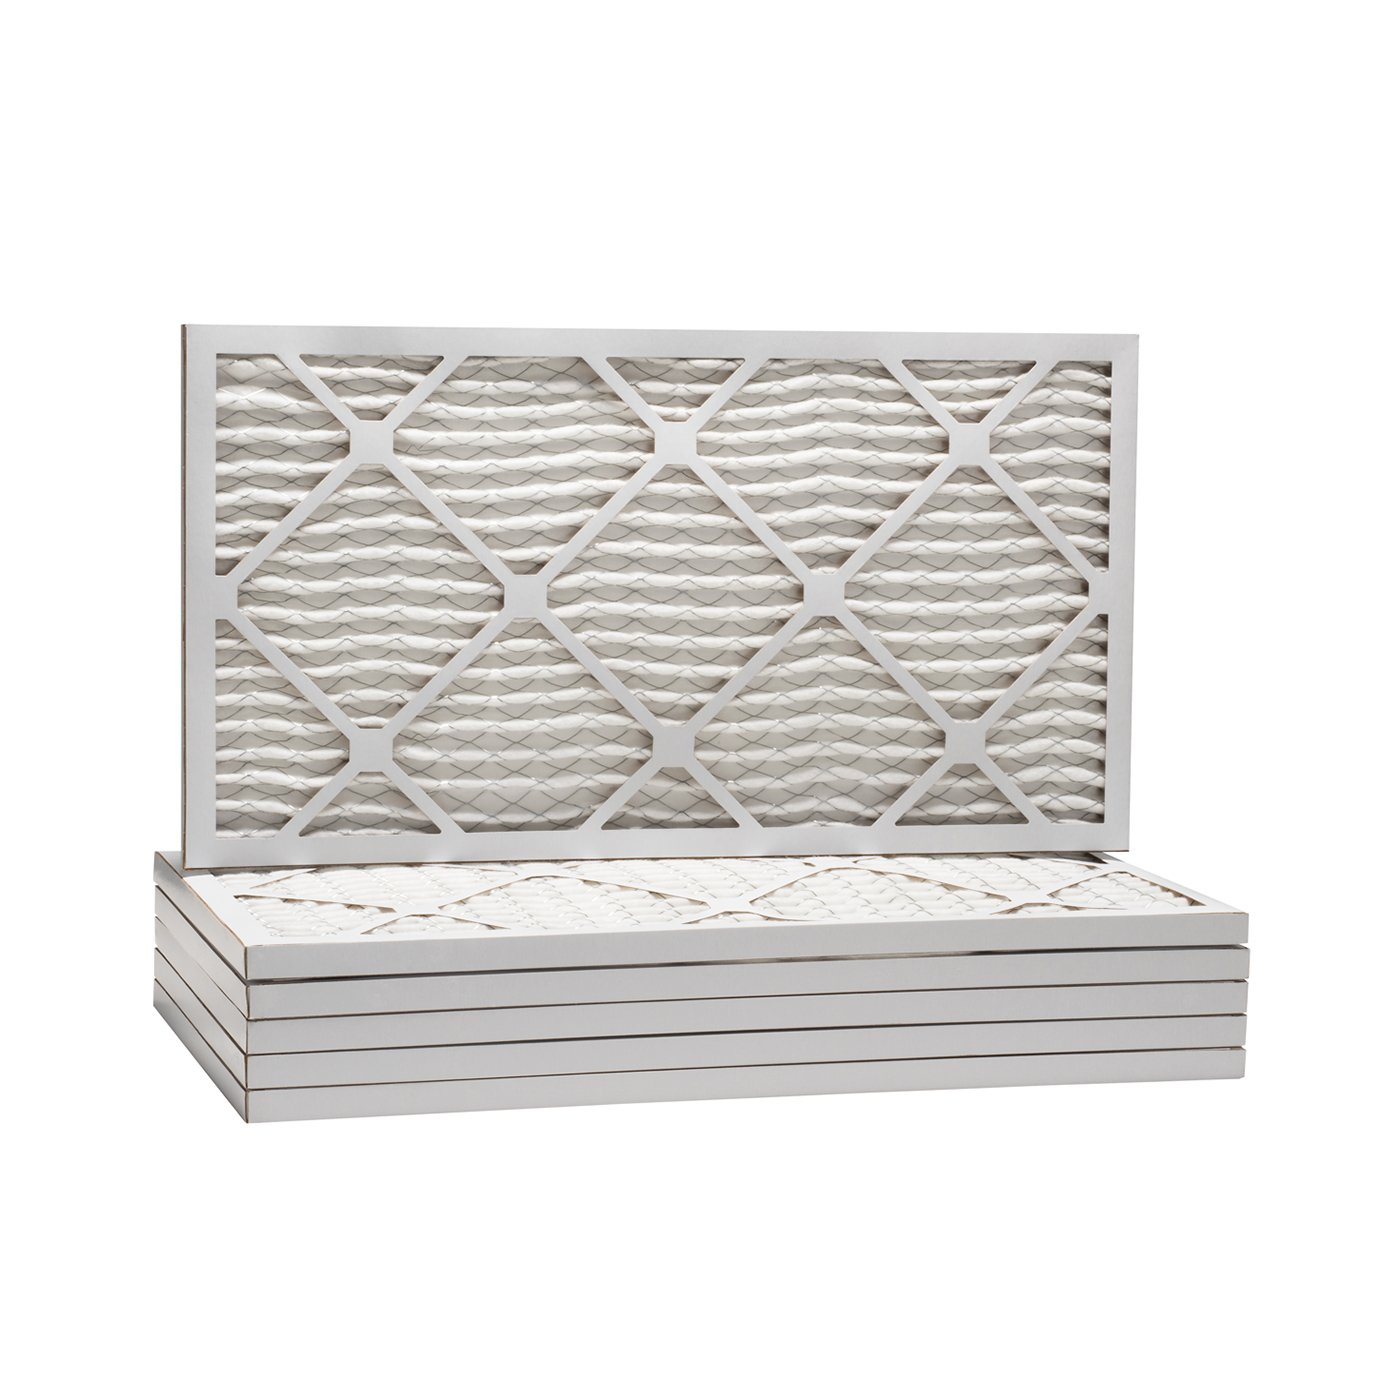 18 x 30 x 1 Commercial Water Dist Pleated Fabric MERV 11 ReplacementBrand P15S-611830-6-PACK P15S-611830 Pleated Air Filter Pack of 6 P25S-611425-6-PACK 18 x 30 x 1